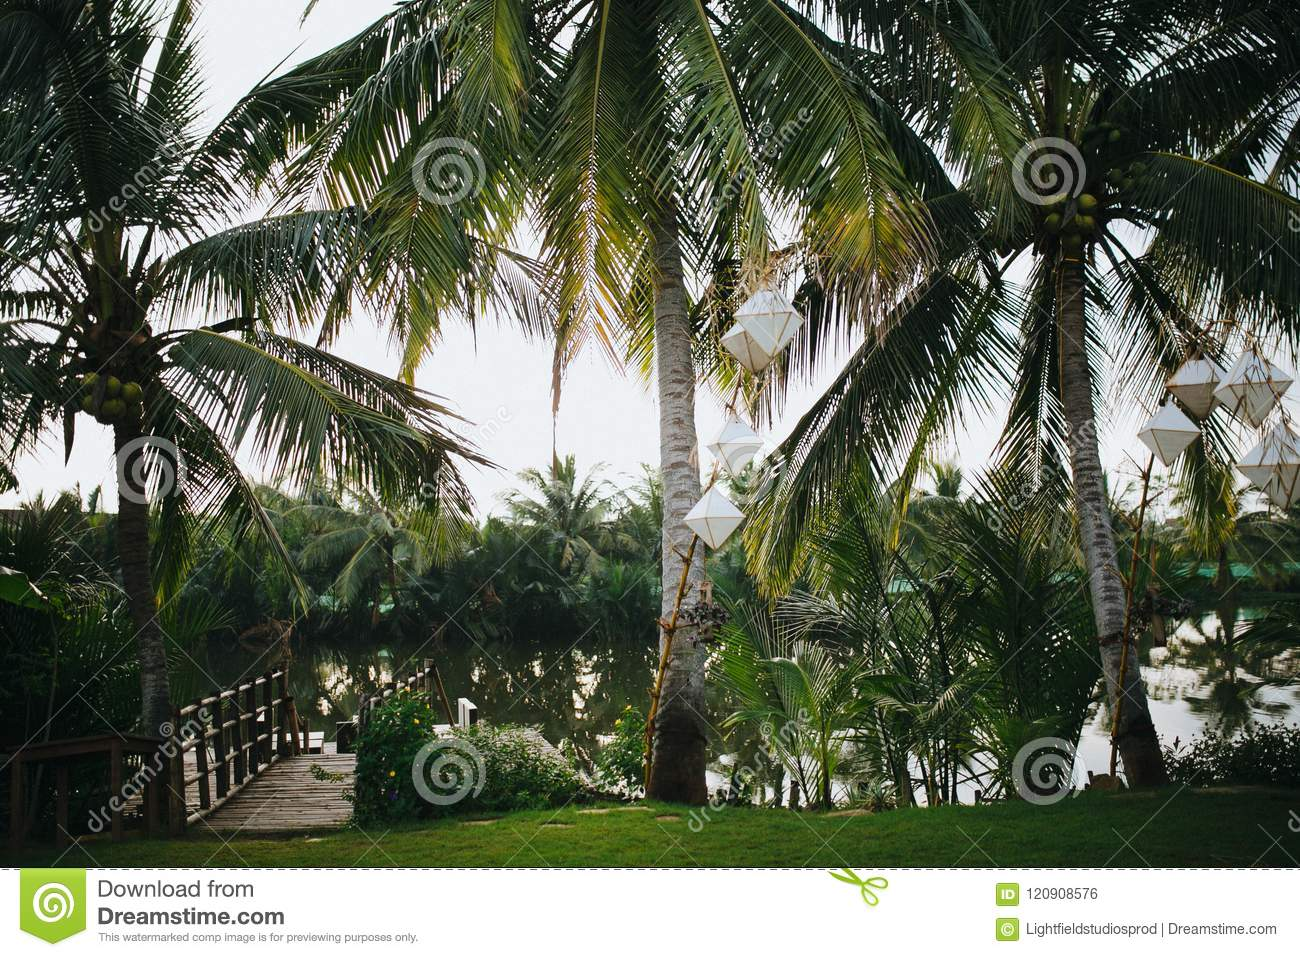 beautiful green palm trees with white lanterns hanging on branches and calm pond in park, Hoi